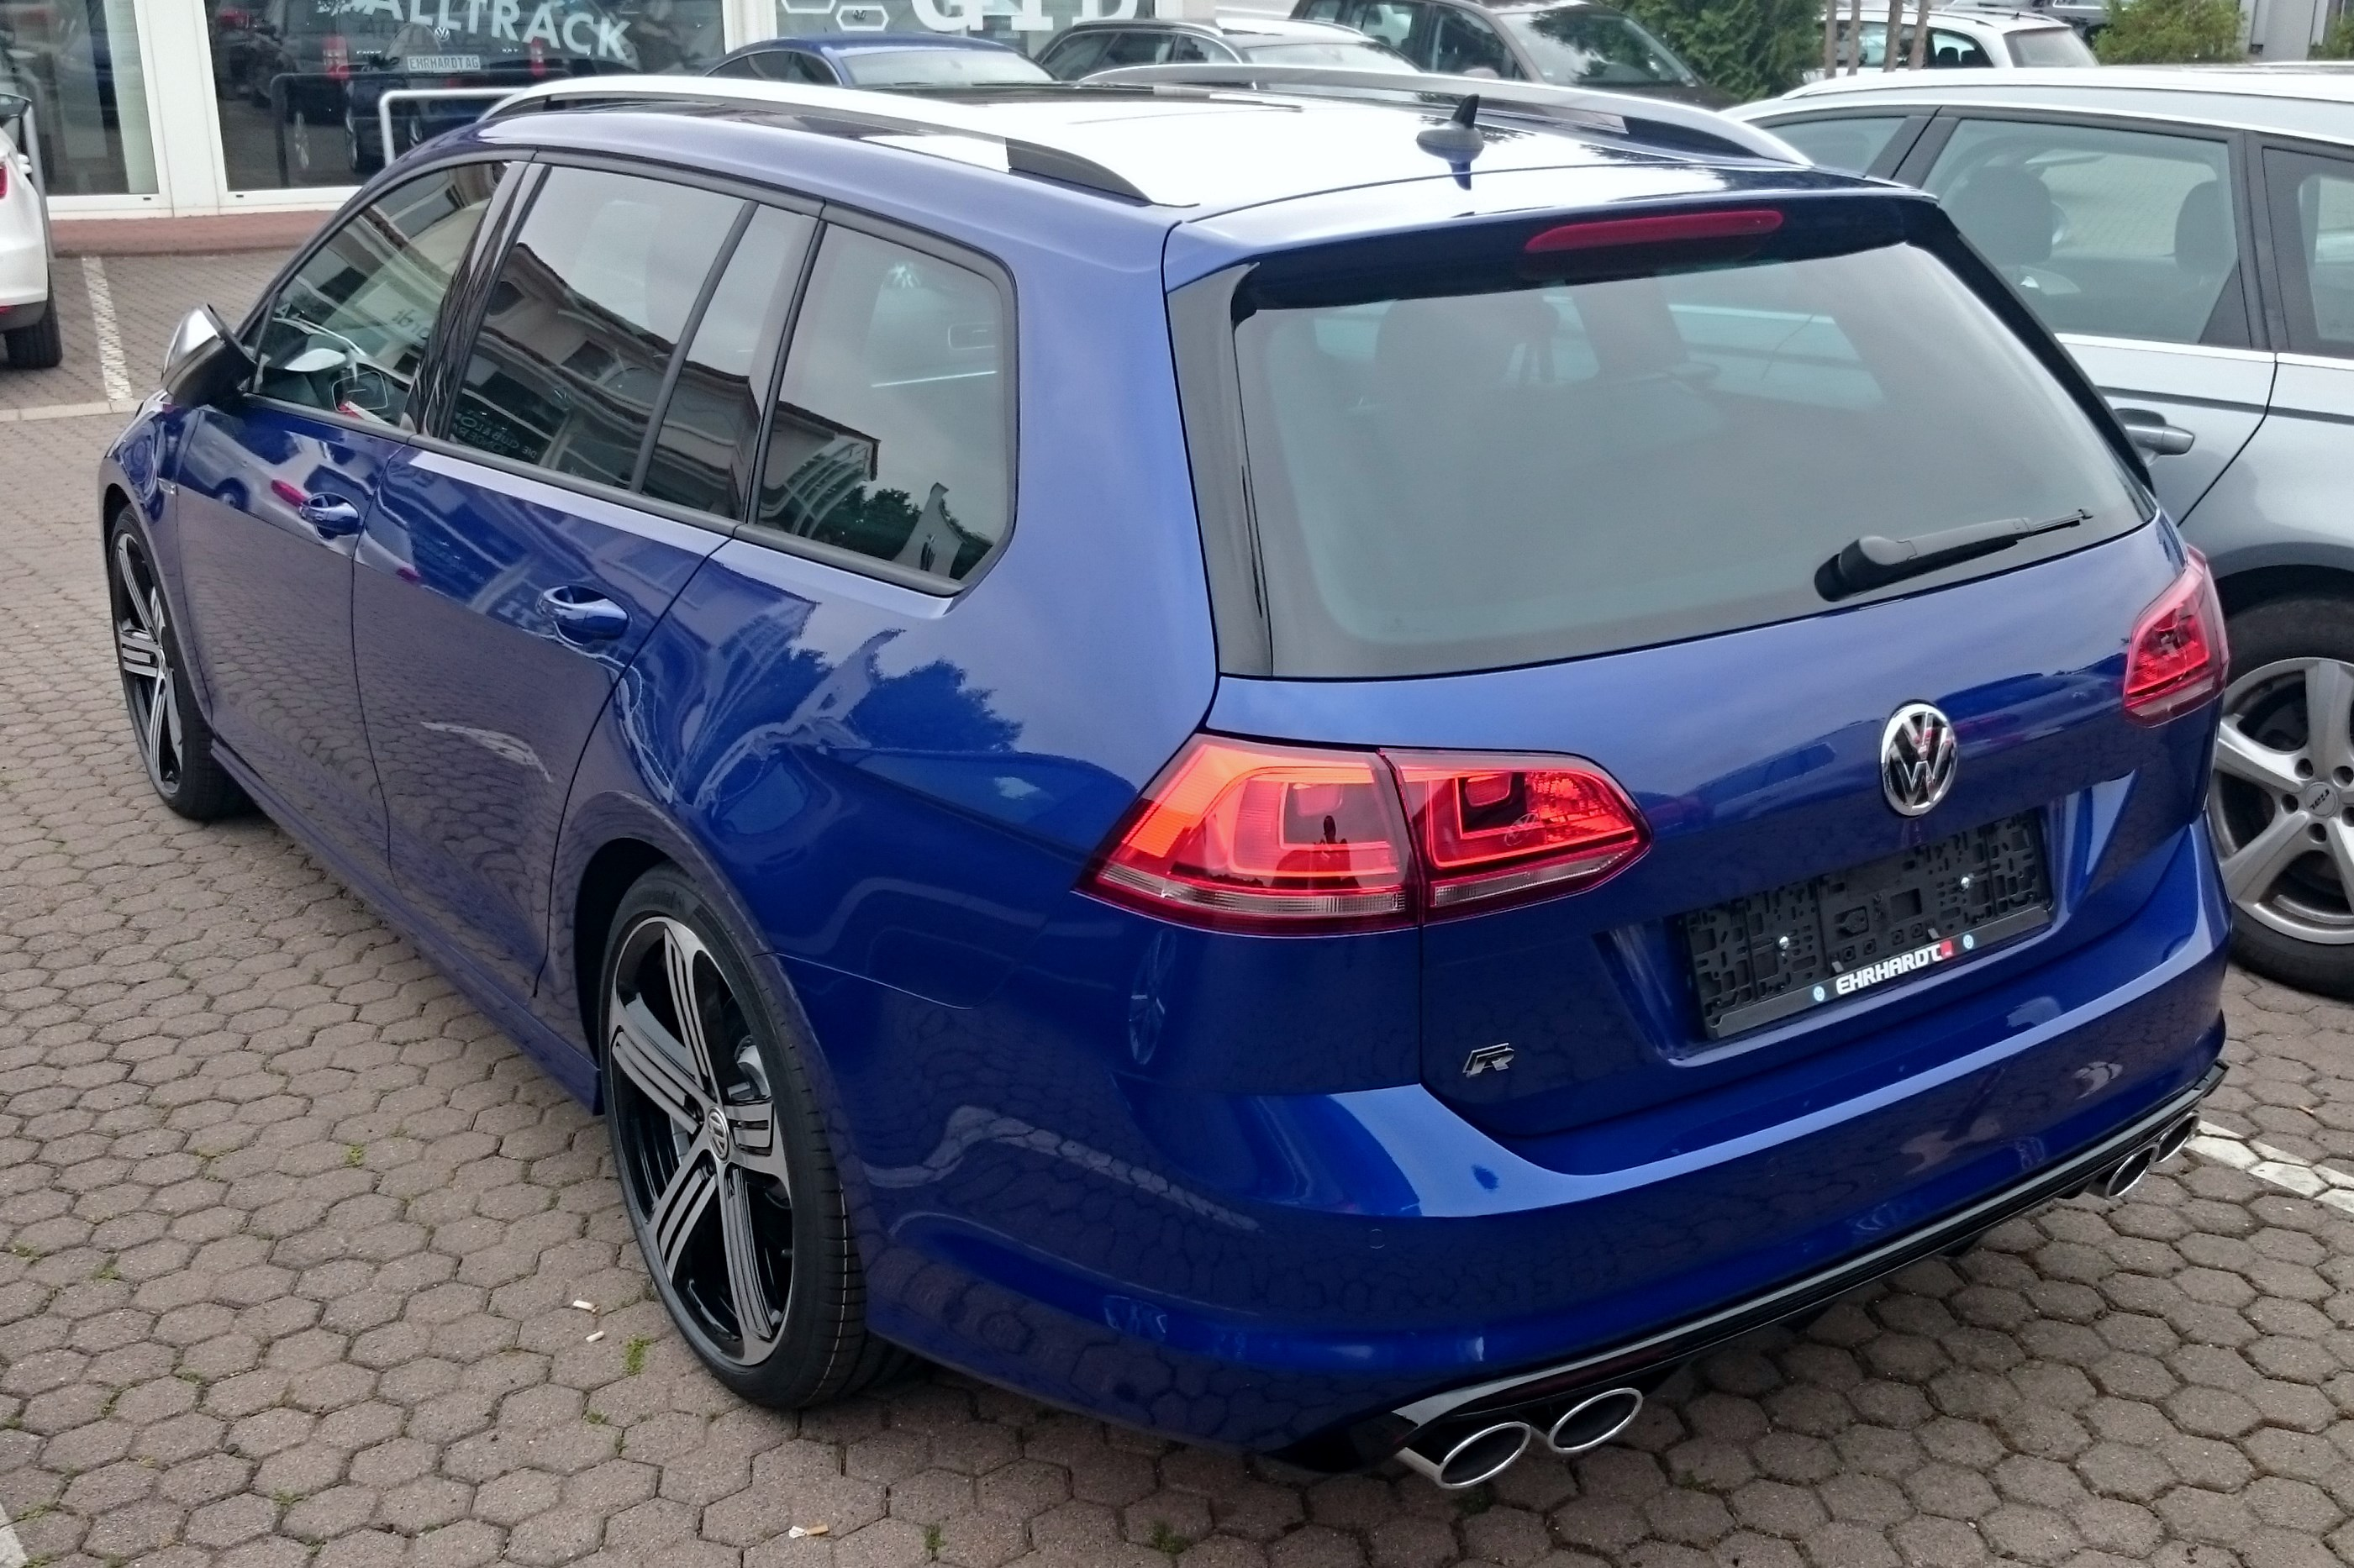 datei vw golf vii r variant 4motion 2 0 tsi dsg heck jpg wikipedia. Black Bedroom Furniture Sets. Home Design Ideas